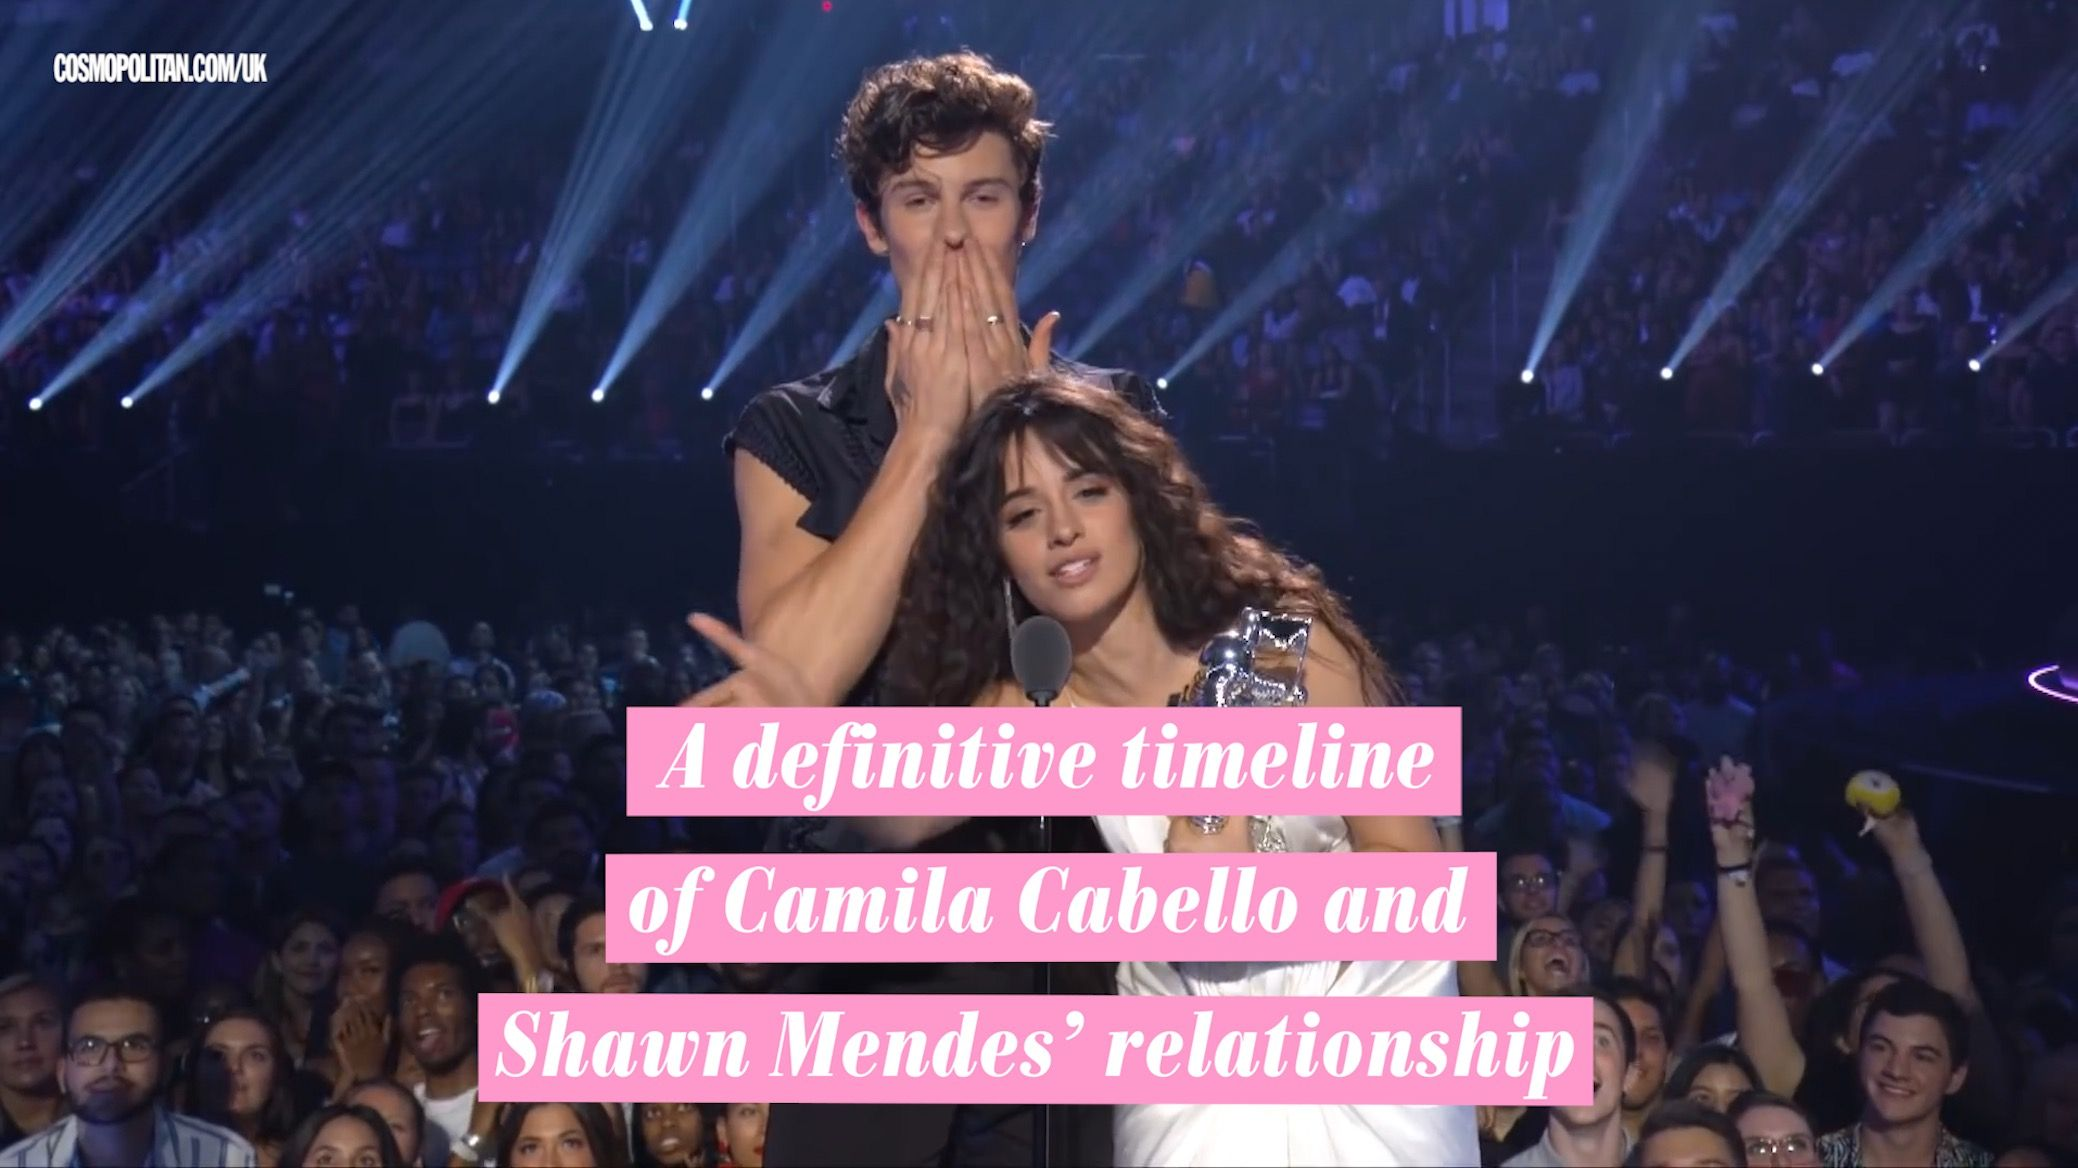 Camila Cabello and Shawn Mendes relationship timeline